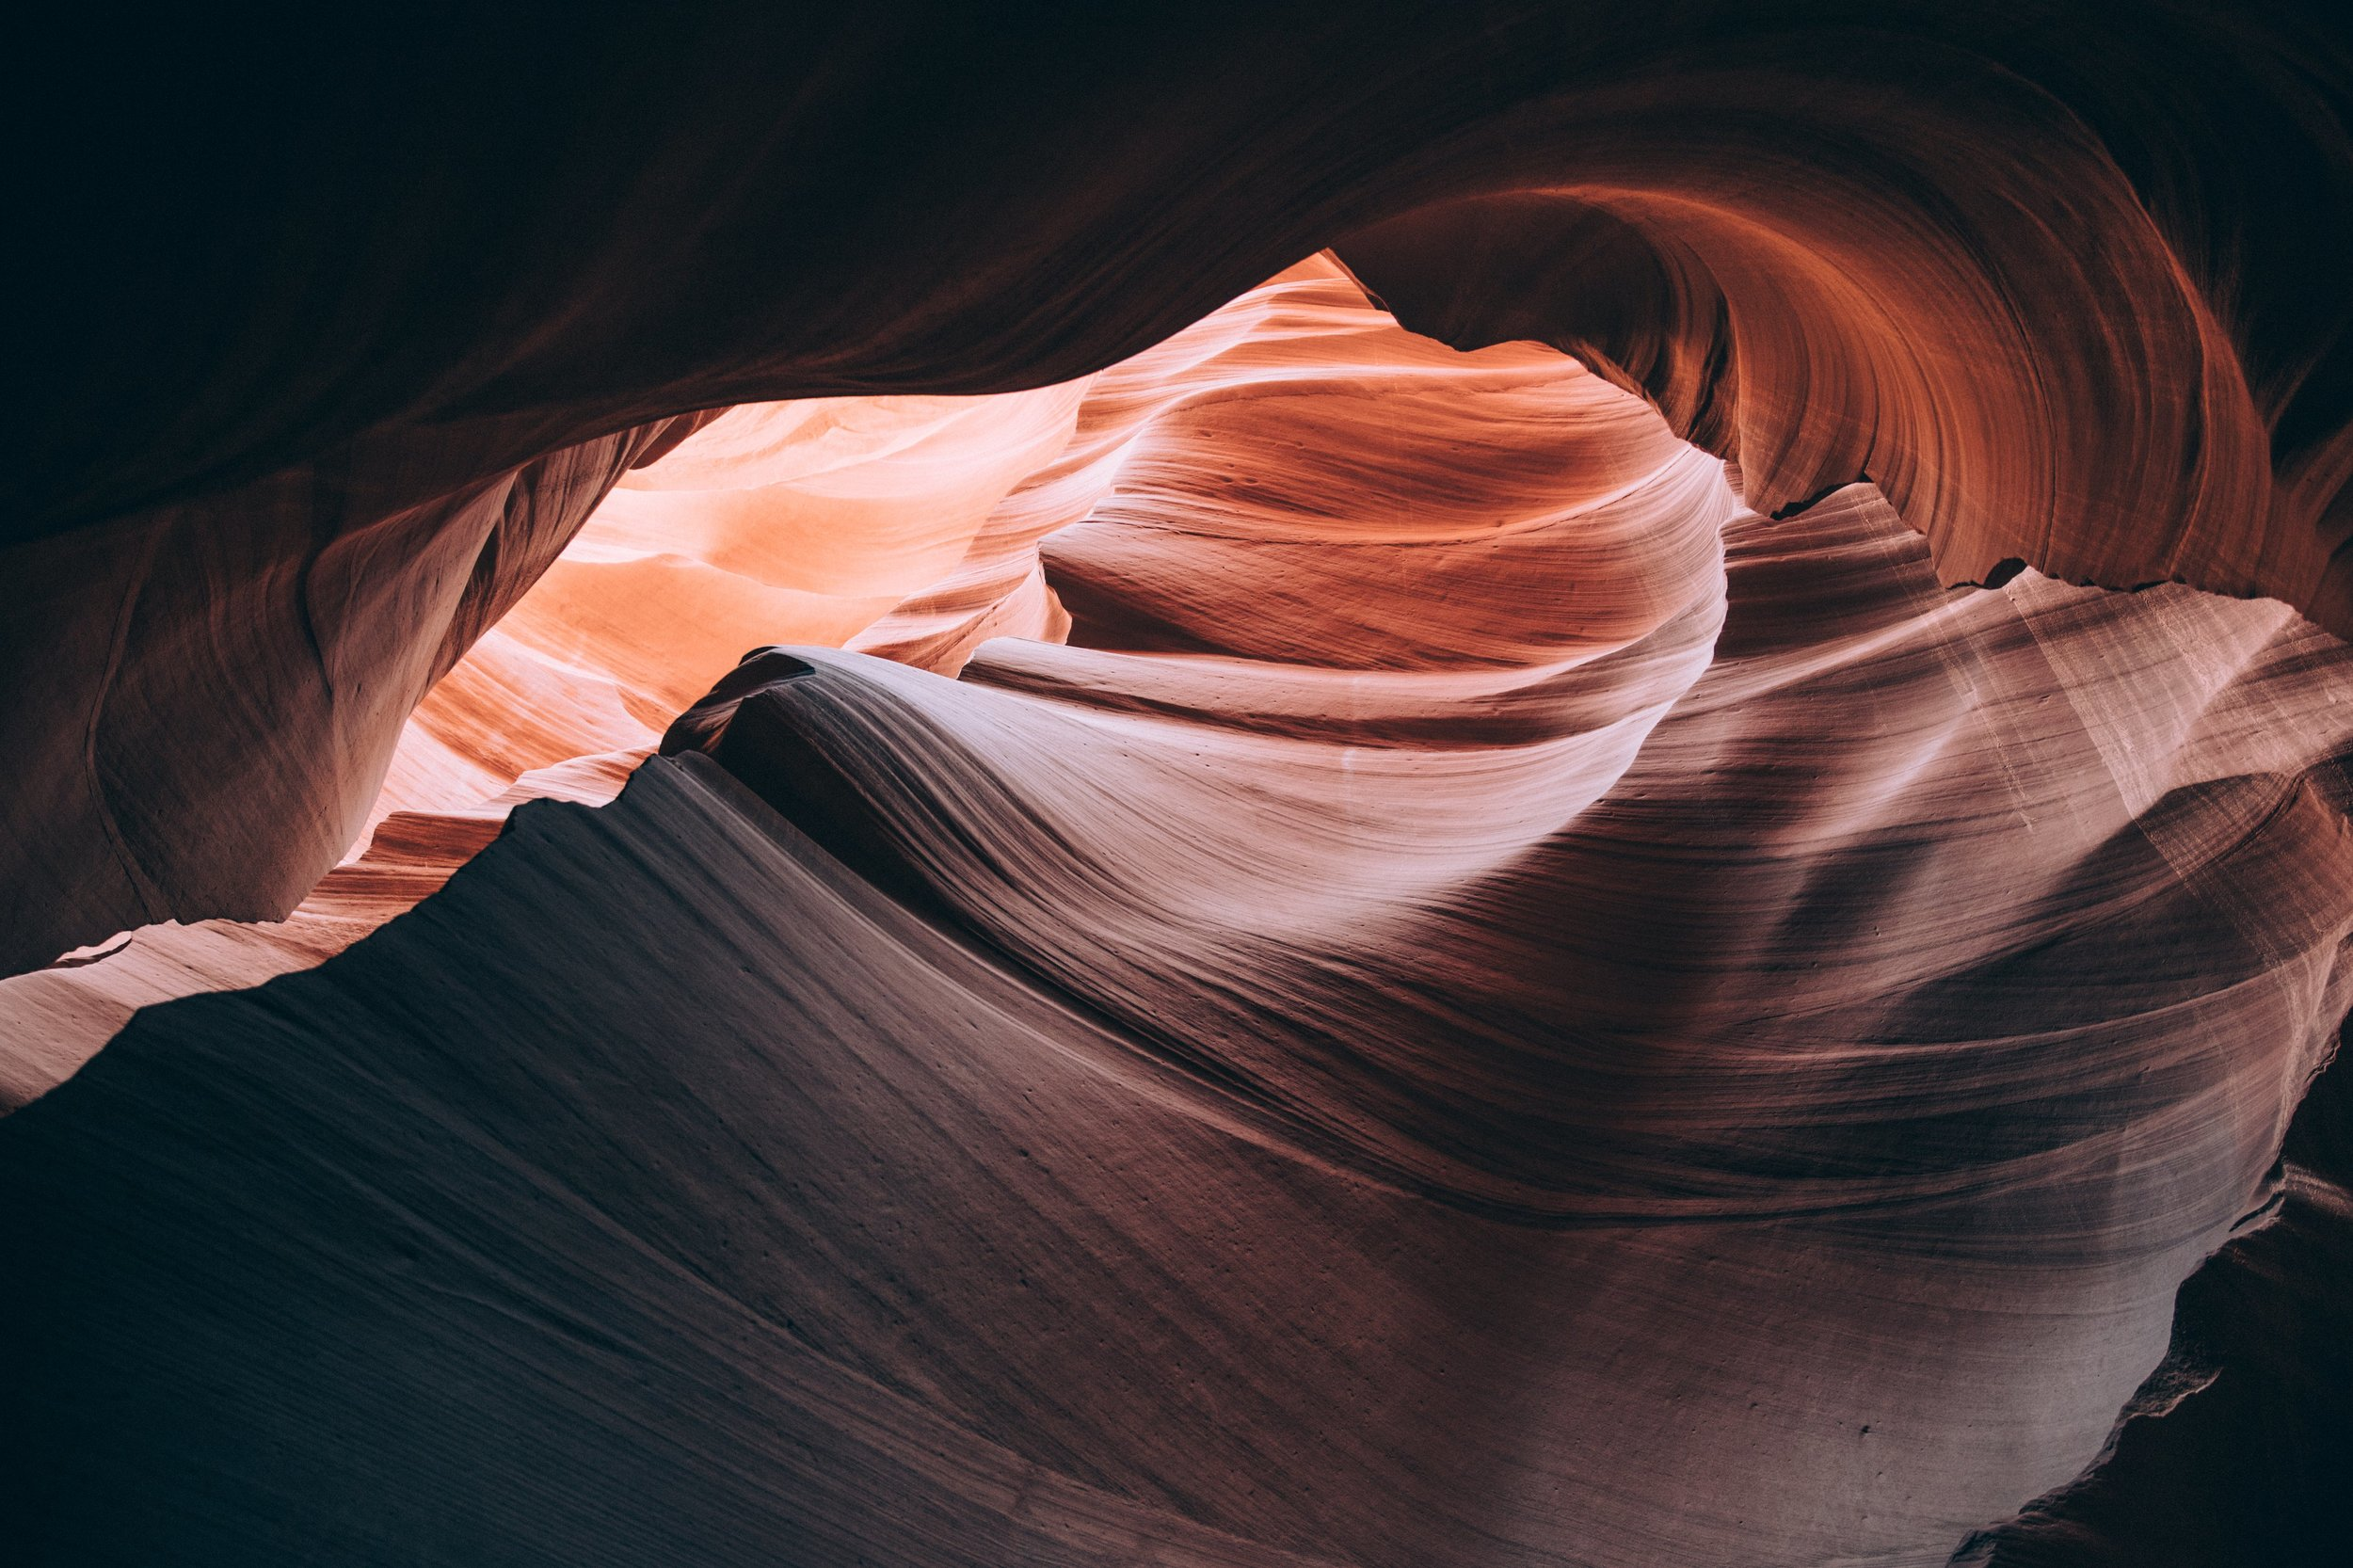 light-and-curves-inside-canyon_4460x4460.jpg